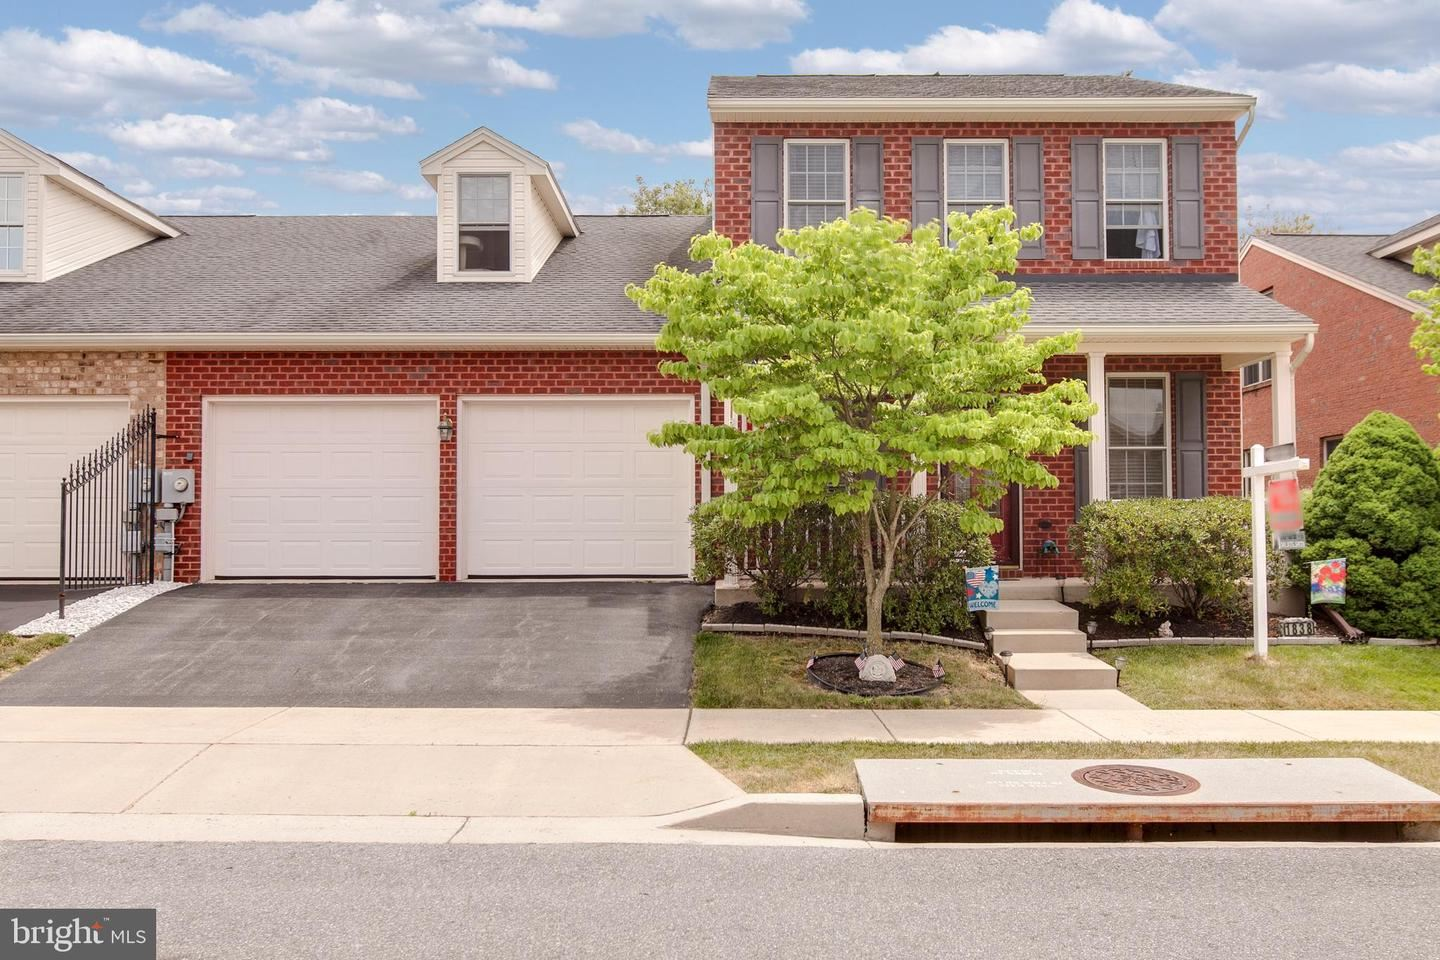 1838 MERIDIAN DR, Hagerstown, MD 21742 - #: MDWA172946